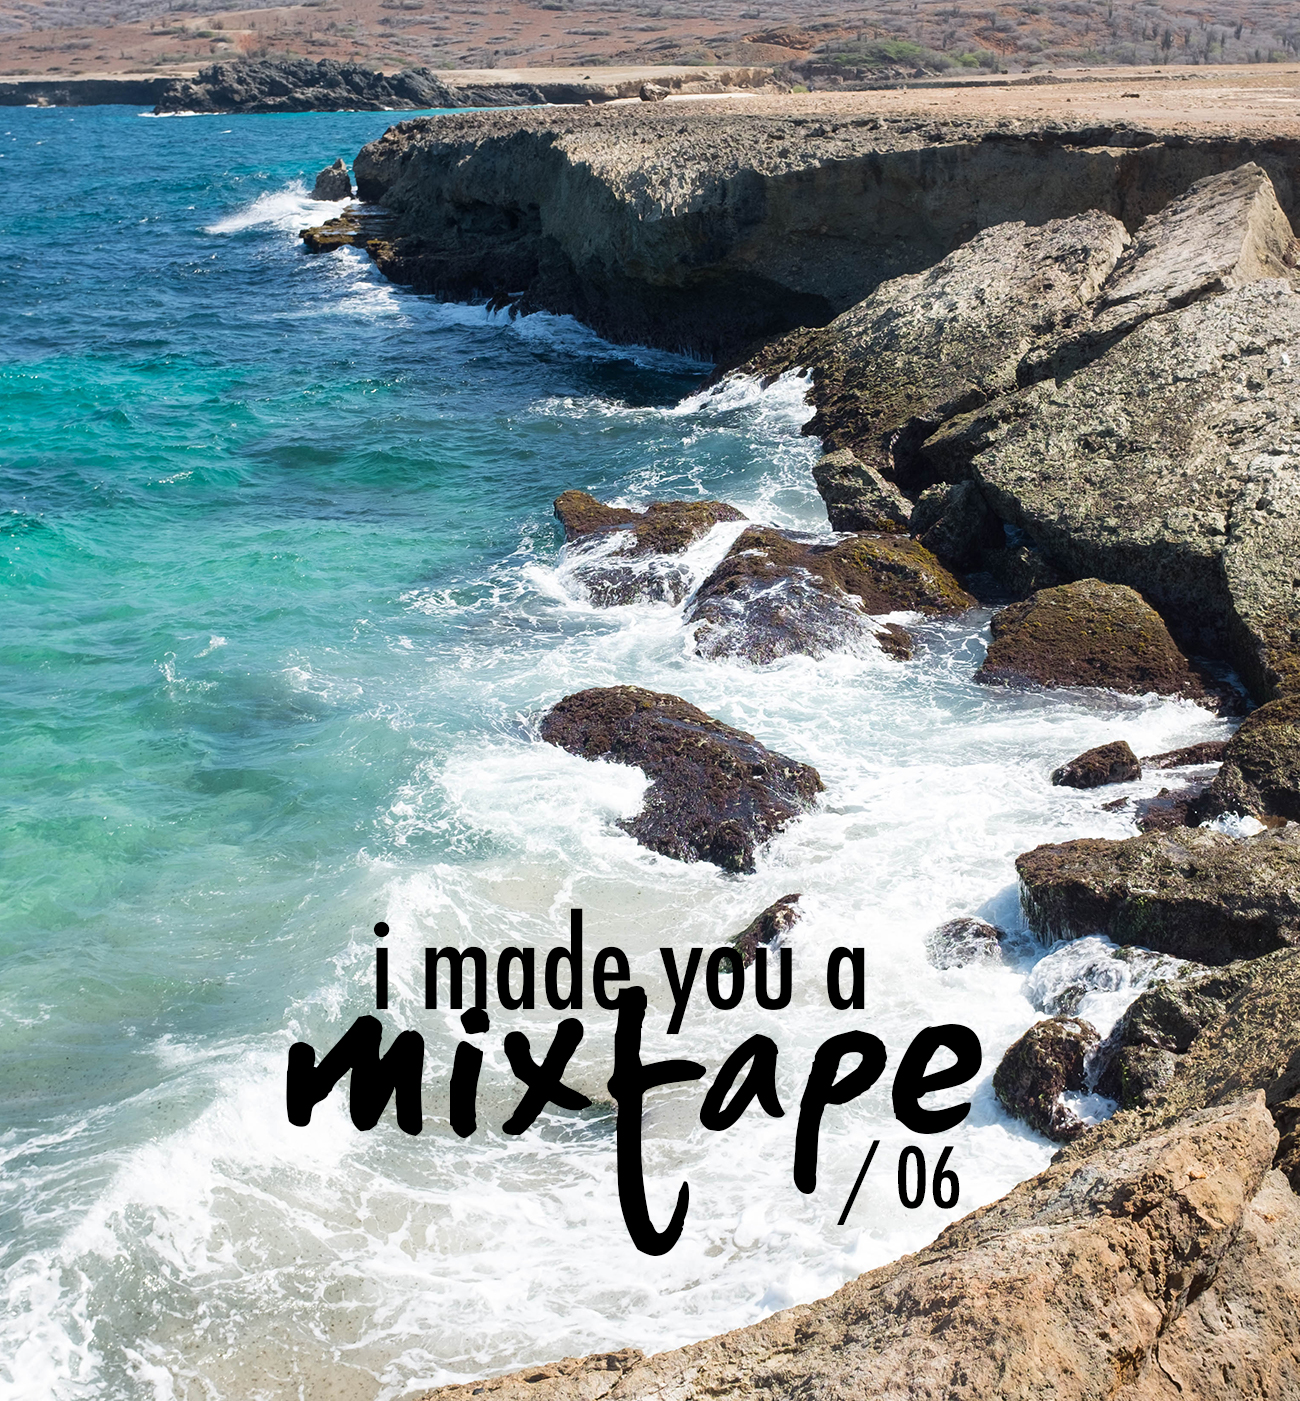 i made you a mixtape / 06 #newmusic #playlist